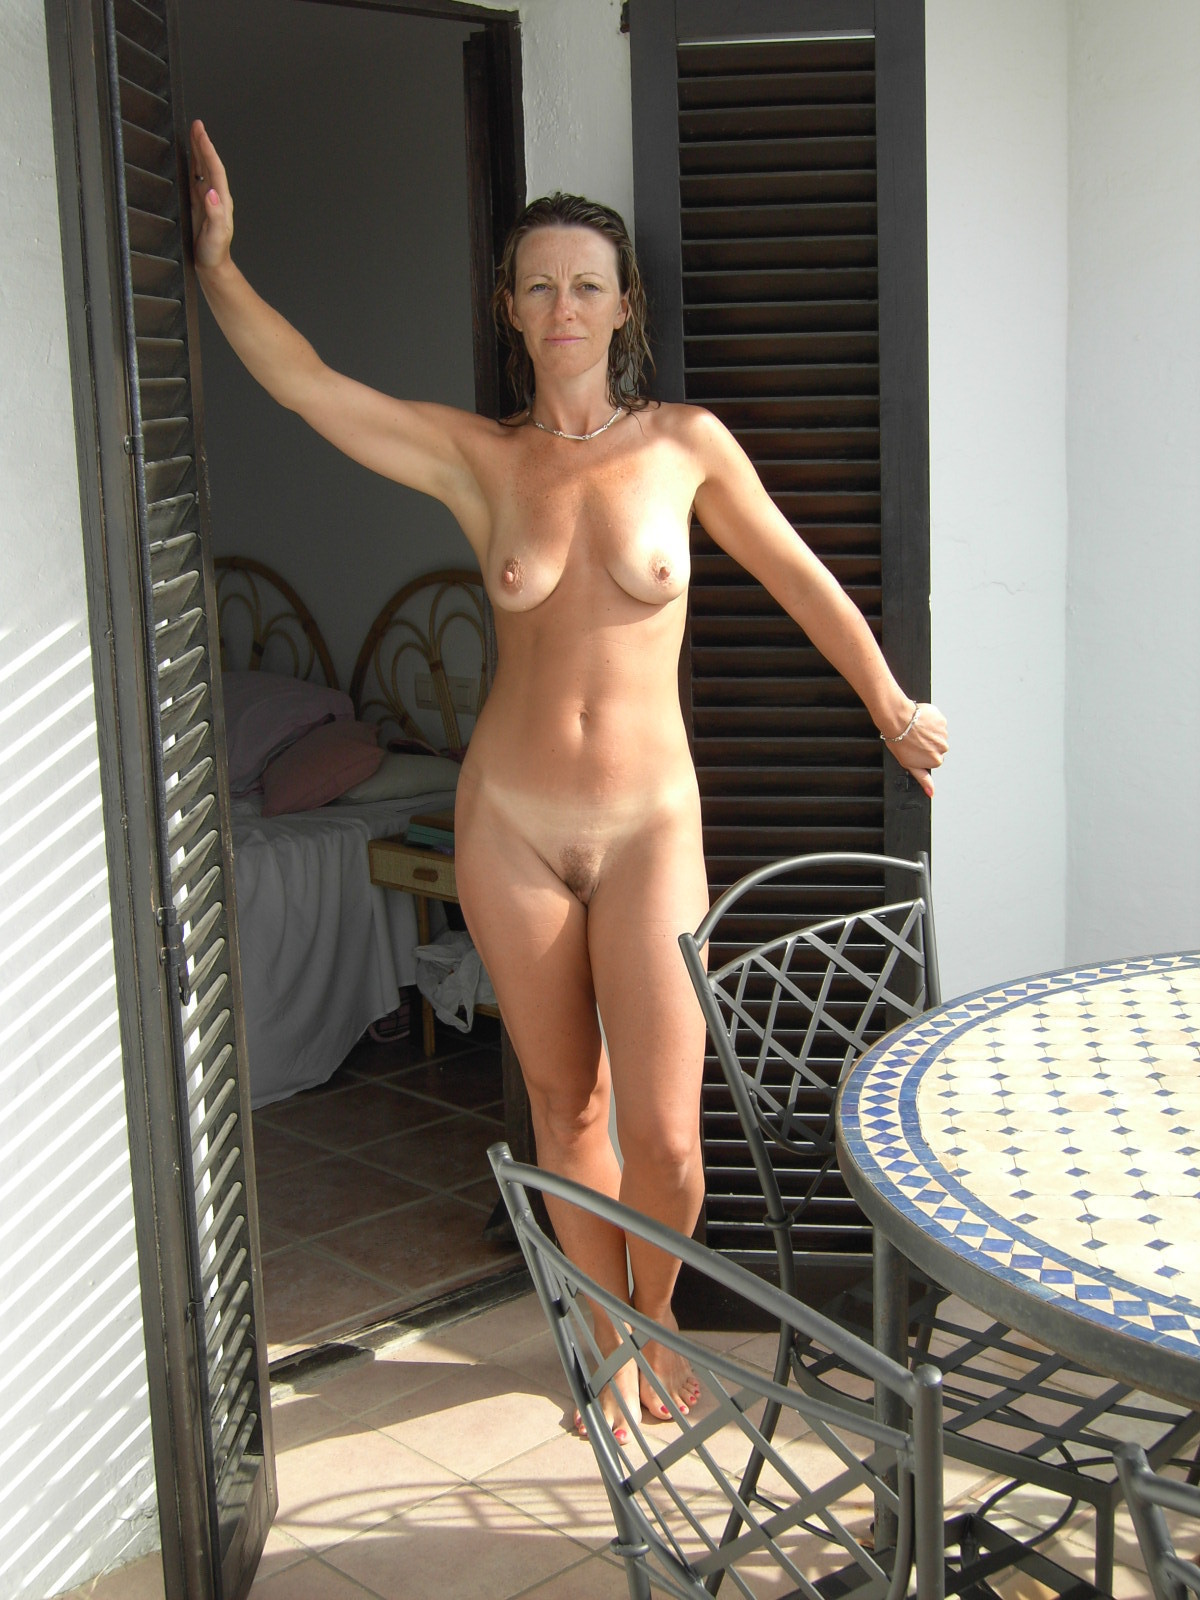 Naked Village - Other Mens Wives  Hot Milf American-7239